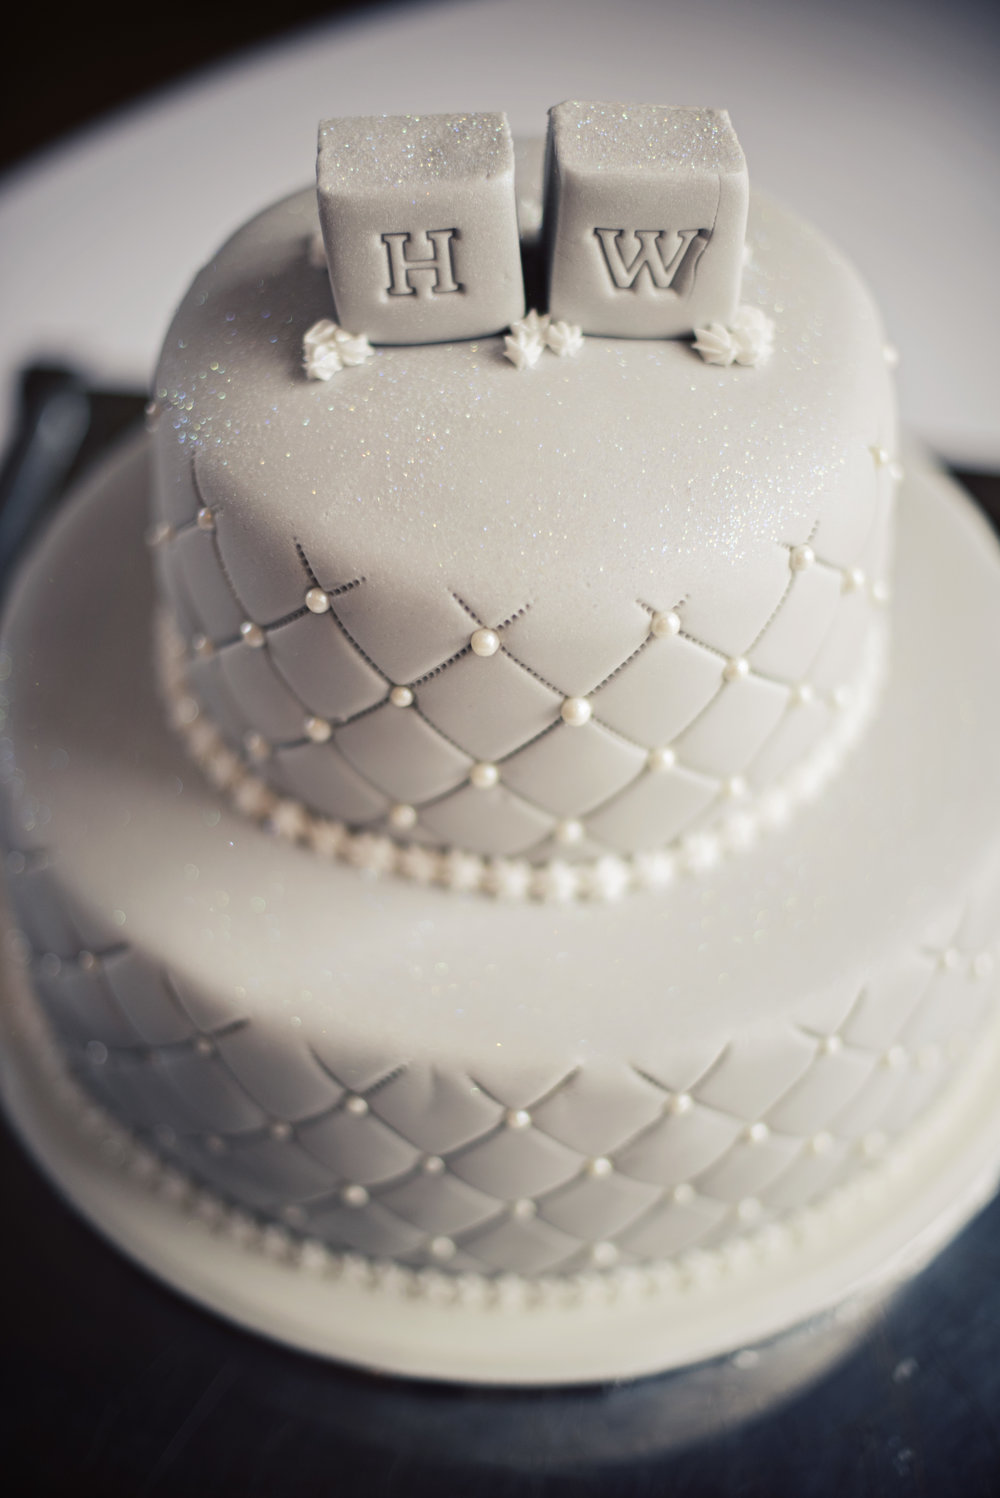 The cake was simple and elegant in dove grey icing with pearly embellishments.